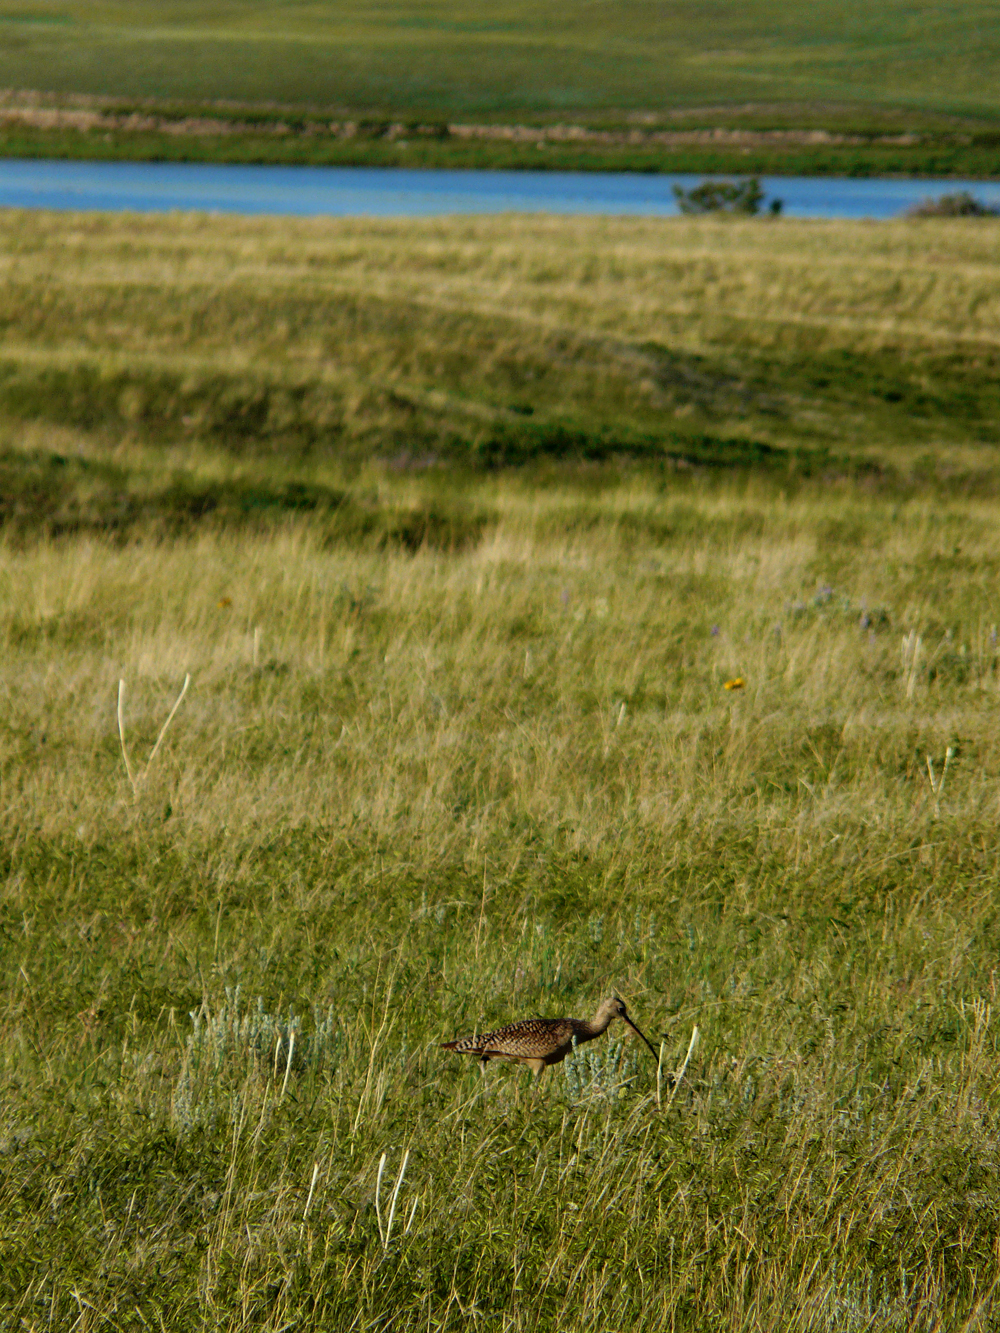 Long-billed curlew is declining across its range due to overharvest, breeding habitat loss.